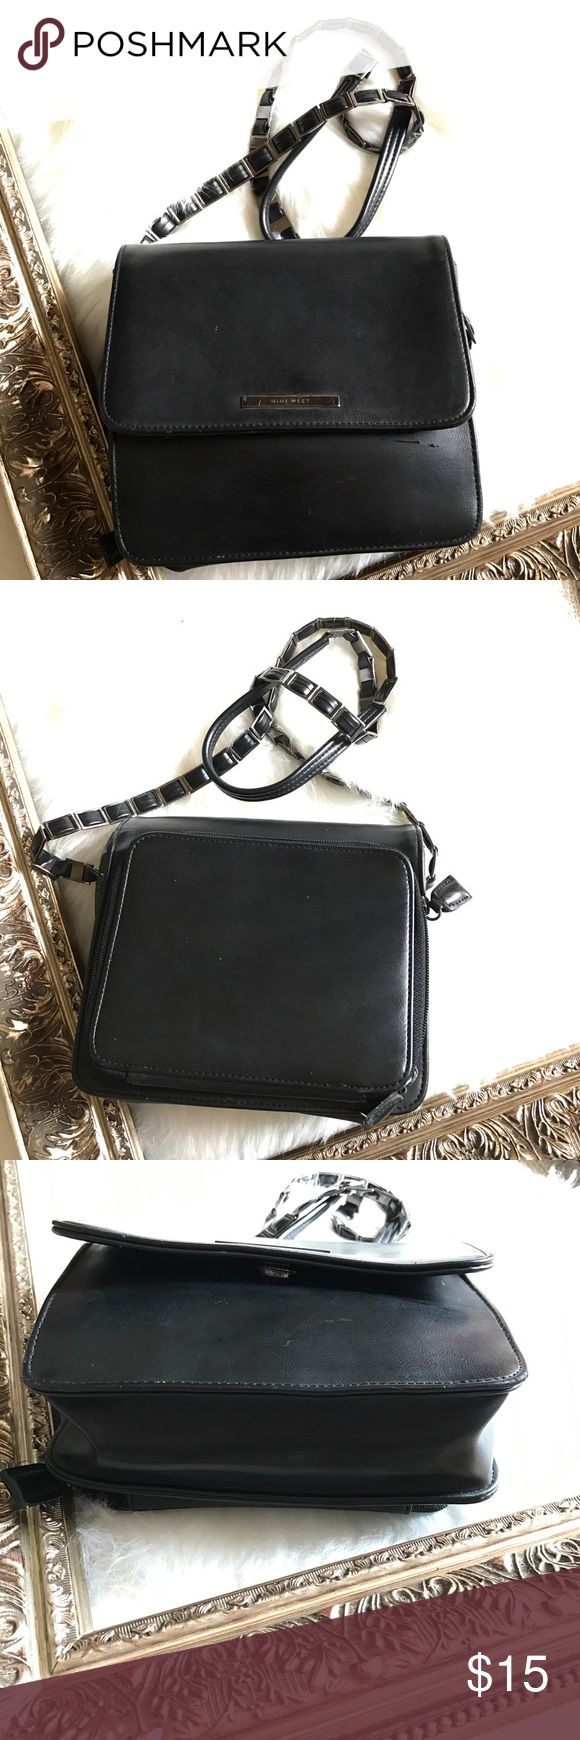 NINE WEST BLACK CROSSBODY BAG Used quite a few times but still in good condition.Has exterior compartment with 5 card slots, ID slot and one coin compartment with zip closure. interior has one compartment with zip closure and top has a snap closure. Strap has this pretty design.Great deal! Nine West Bags Crossbody Bags